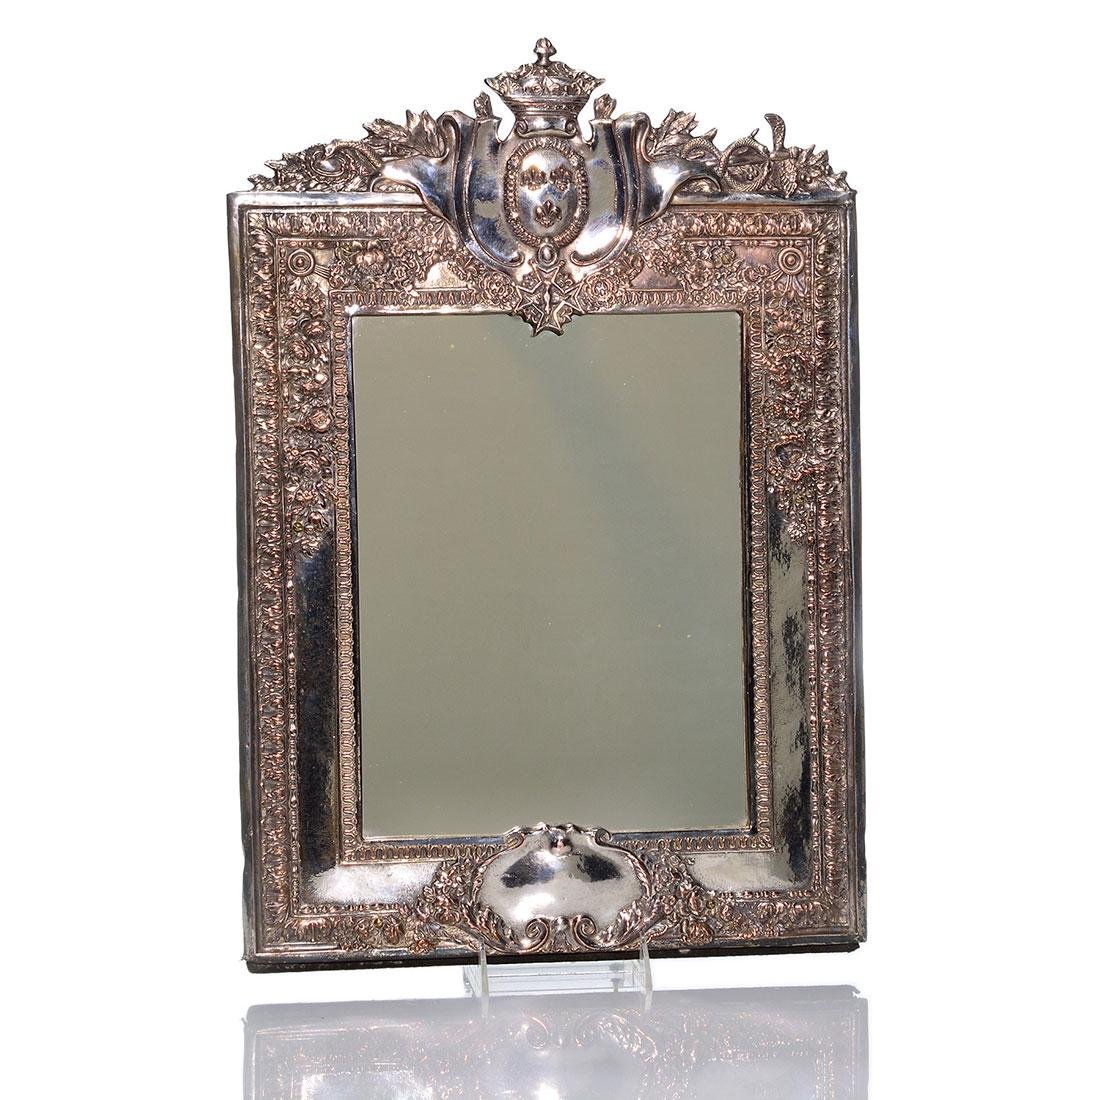 Russian-style silvered frame, mirror, serpents, 21""